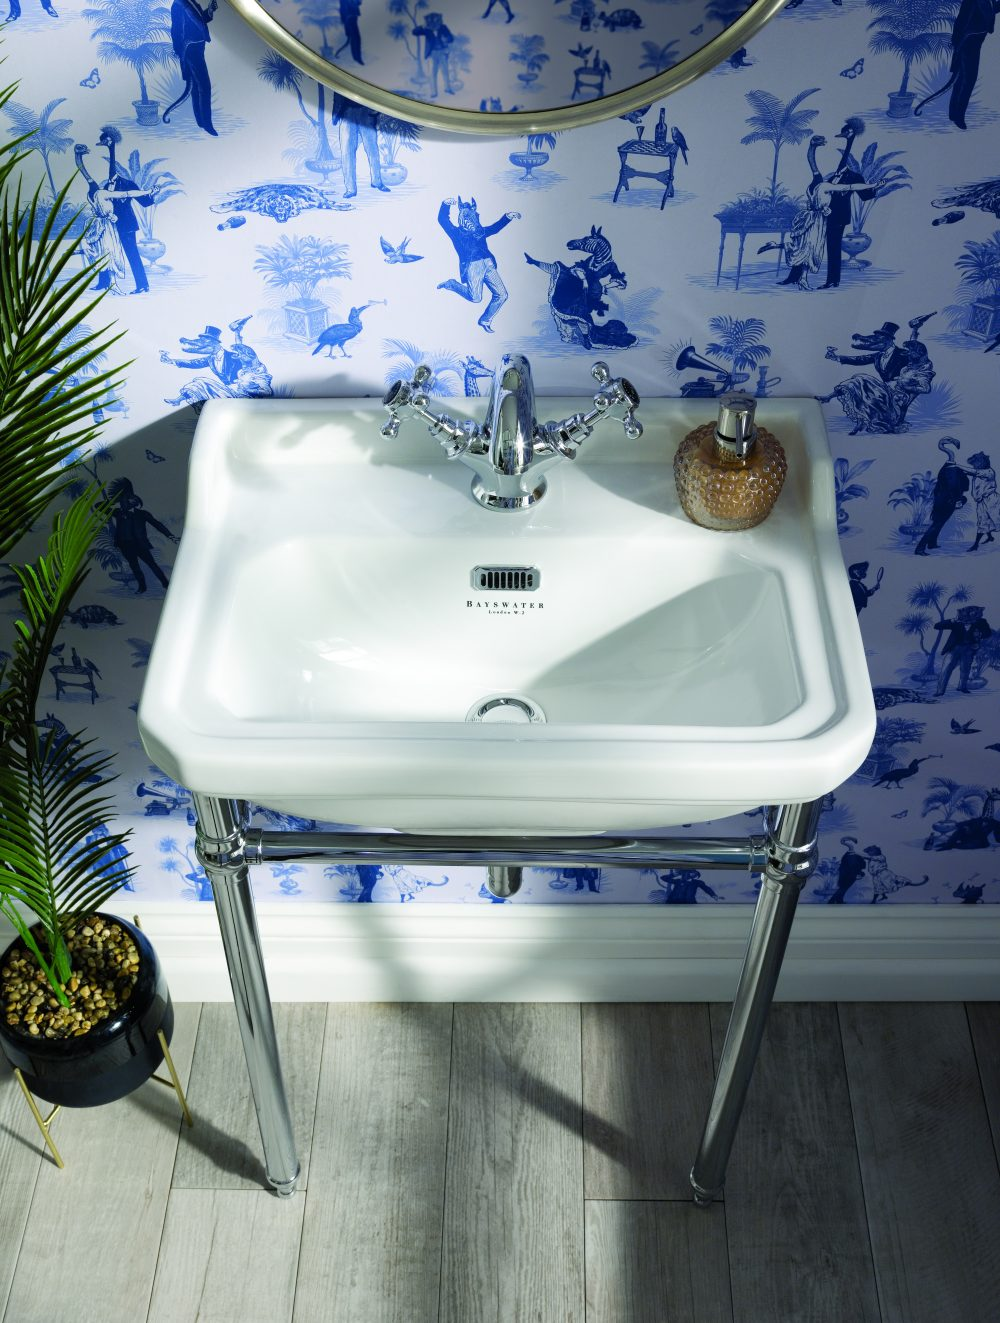 The Fitrroy Basin and Universal Basin Stad with Divine Savages Wallpaper - Safari Soiree